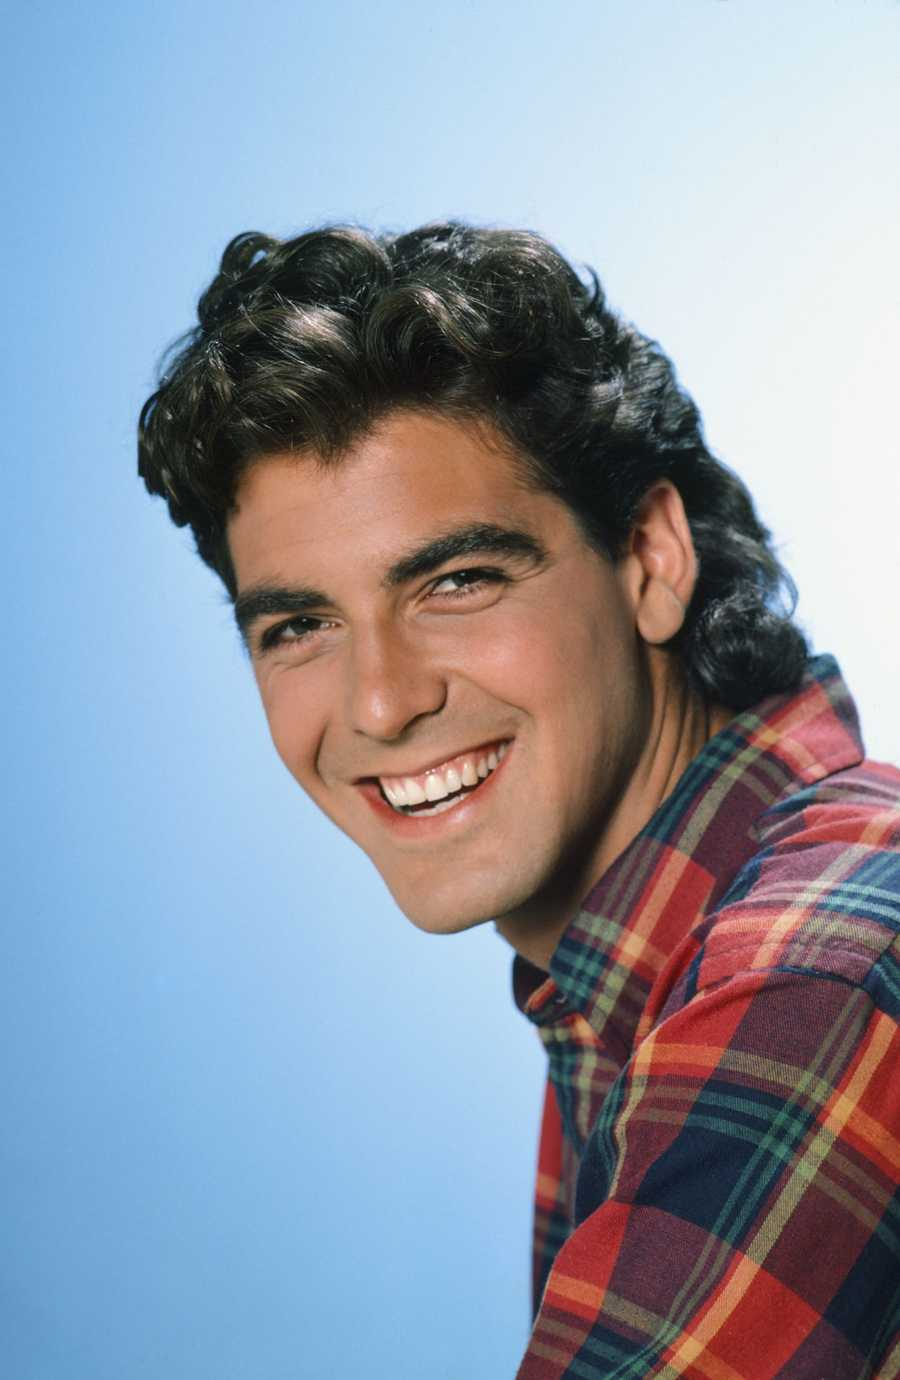 THEN: George ClooneyThis handsome fellow got his start on Riptide on 1984, but his role as friendly (and hunky) neighbor George Burnett on The Facts of Life helped kickstart his career in 1985.